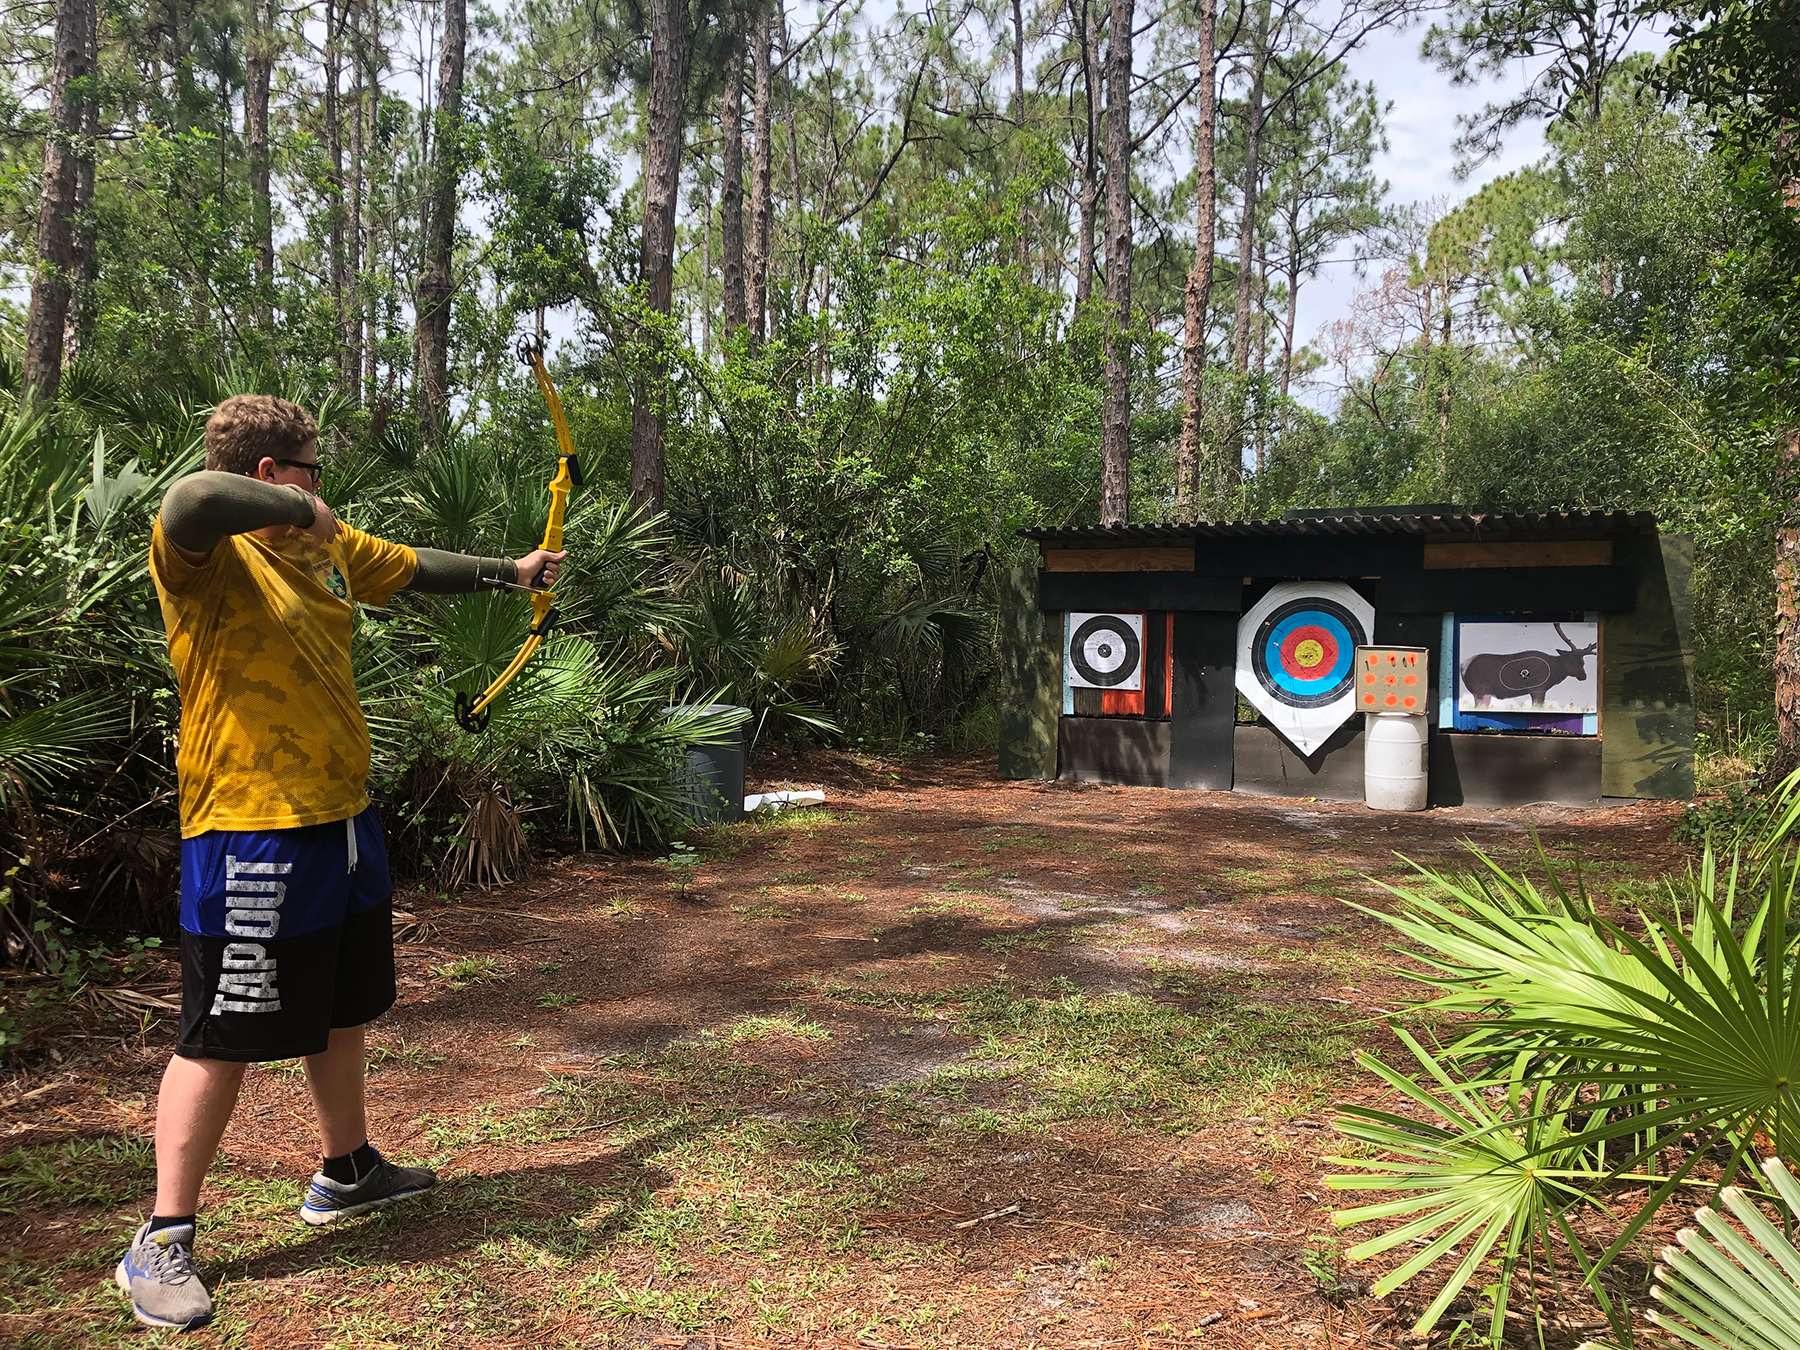 image of a transition teen shooting archery during a summer experience